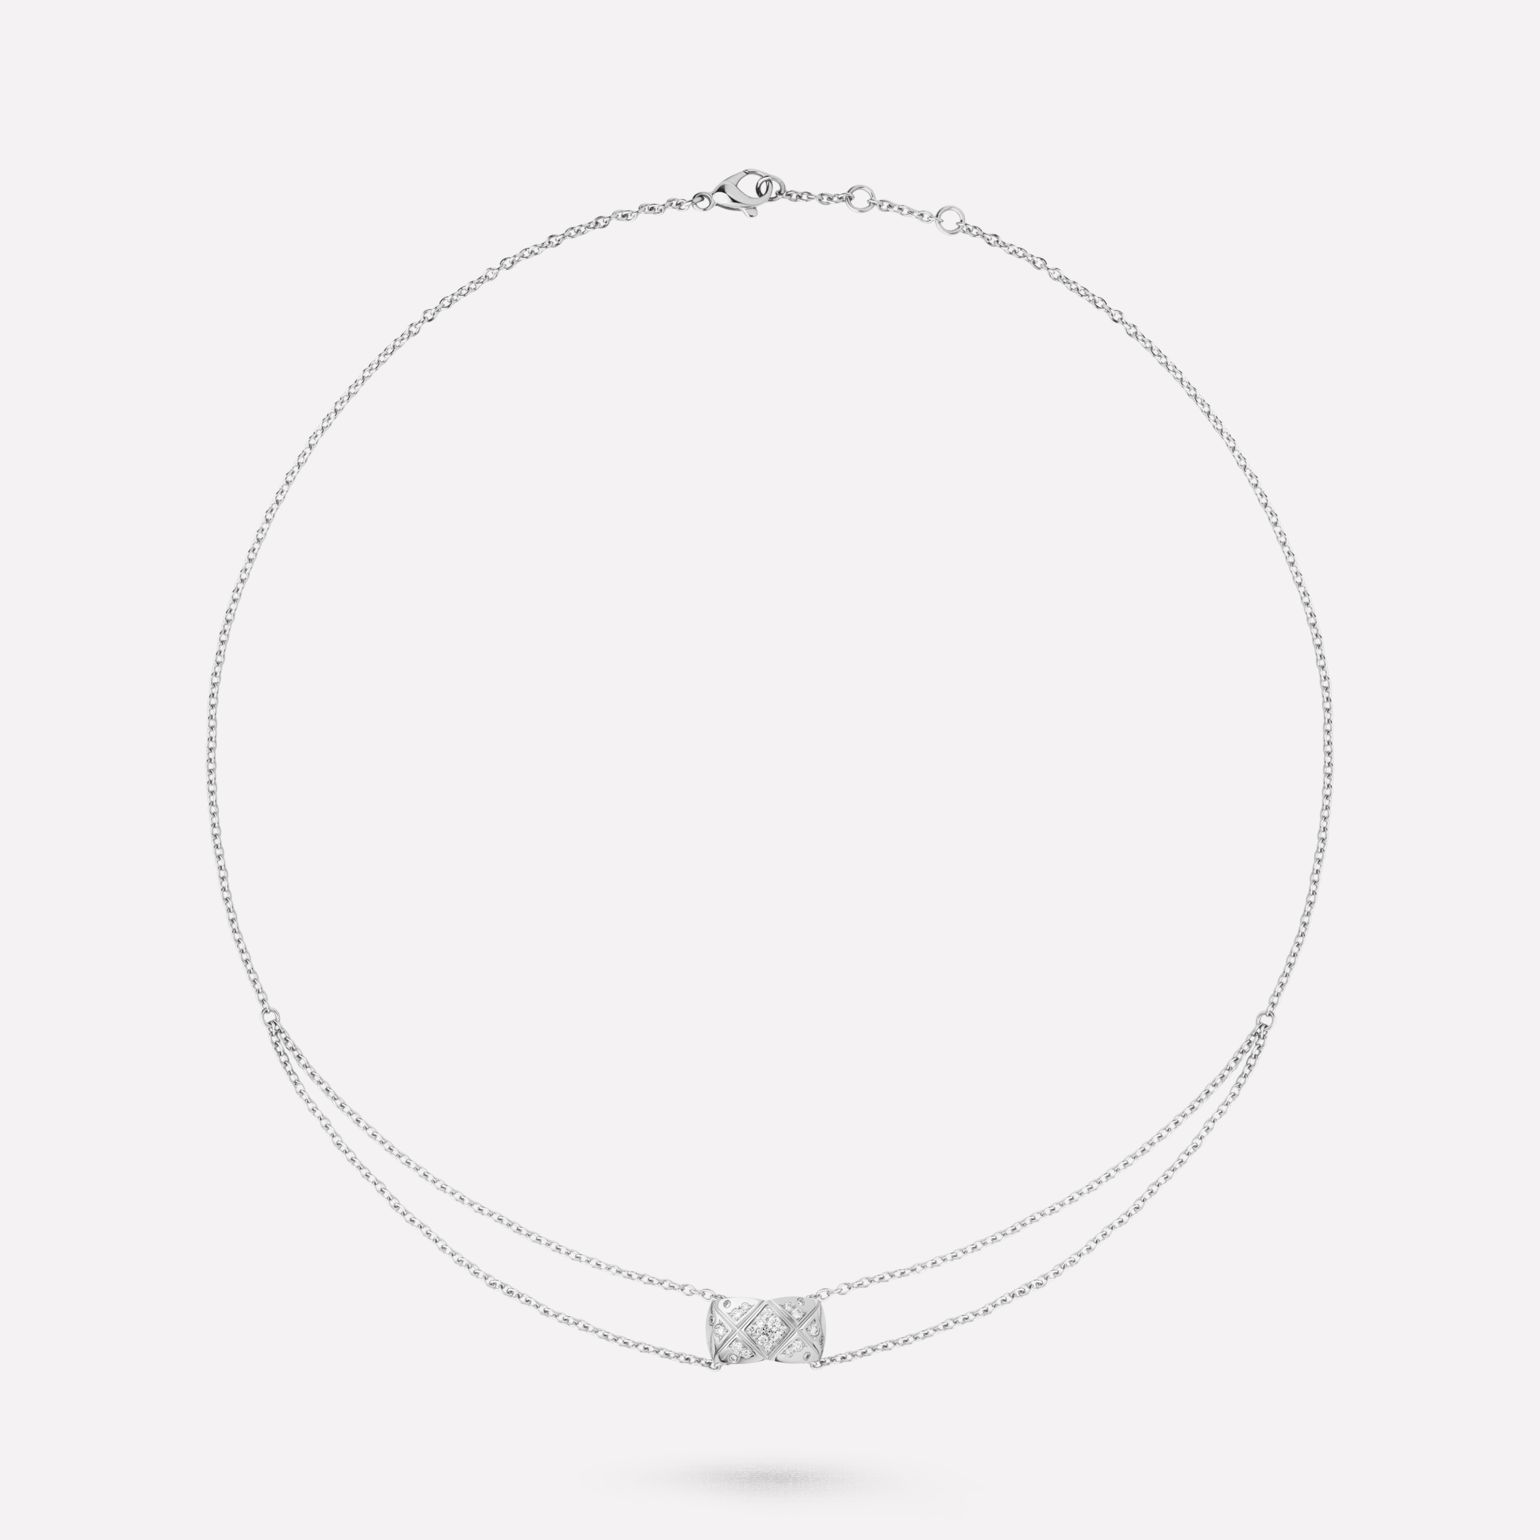 Collier Coco Crush Motif matelassé, en or blanc 18 carats et diamants